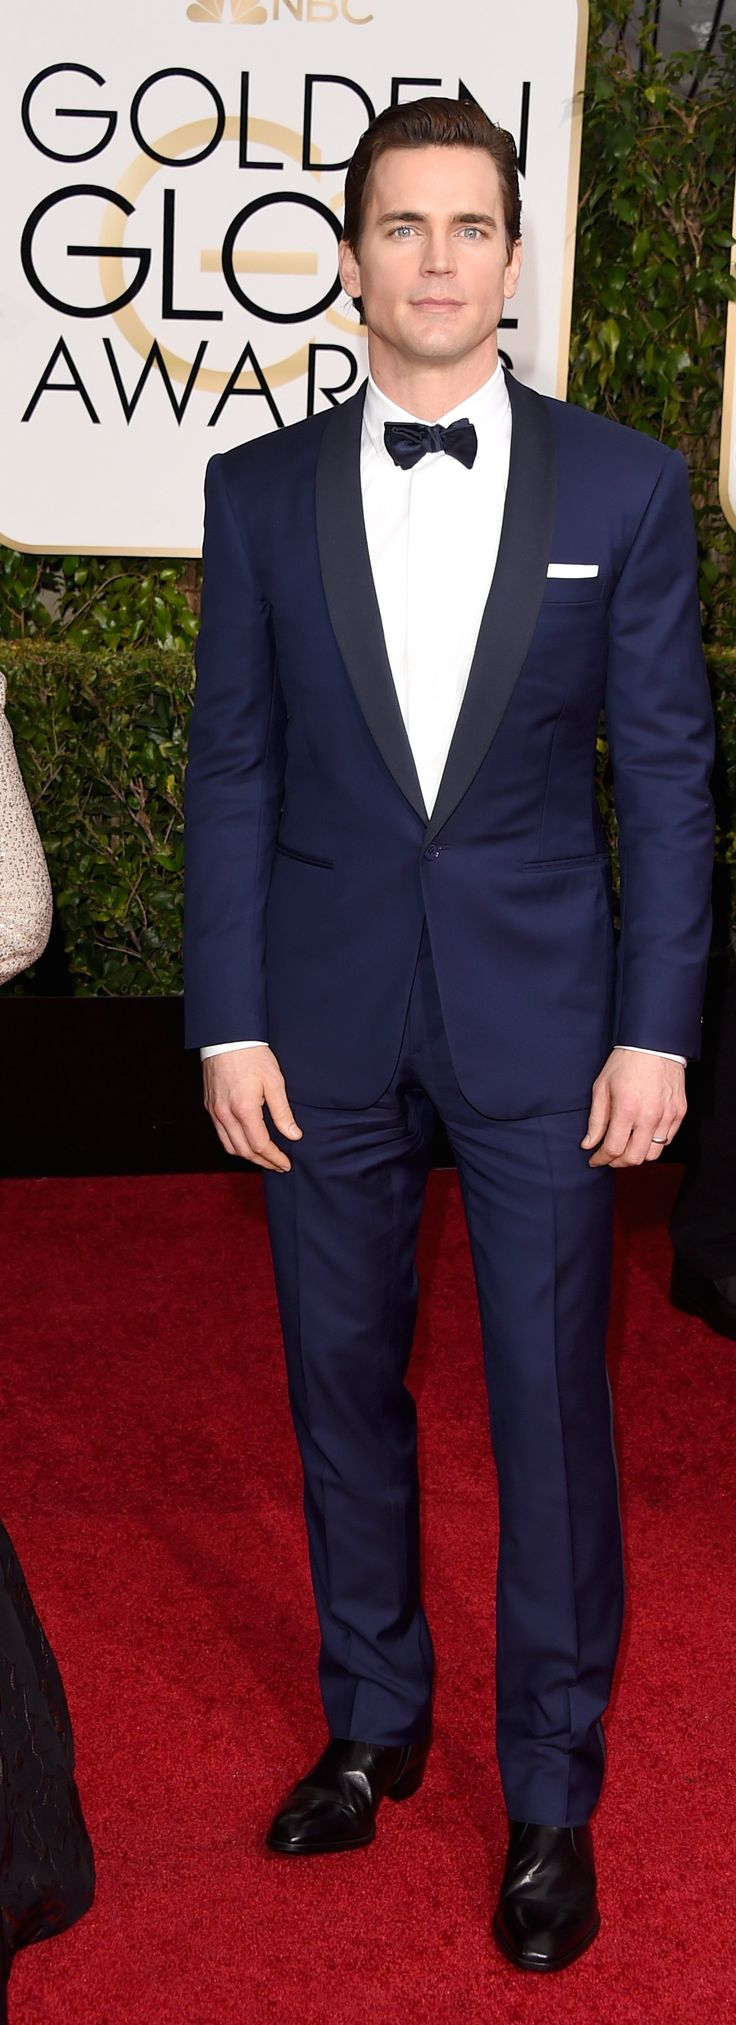 Matt Bomer's midnight-blue Ralph Lauren tuxedo at the 2015 Golden Globes